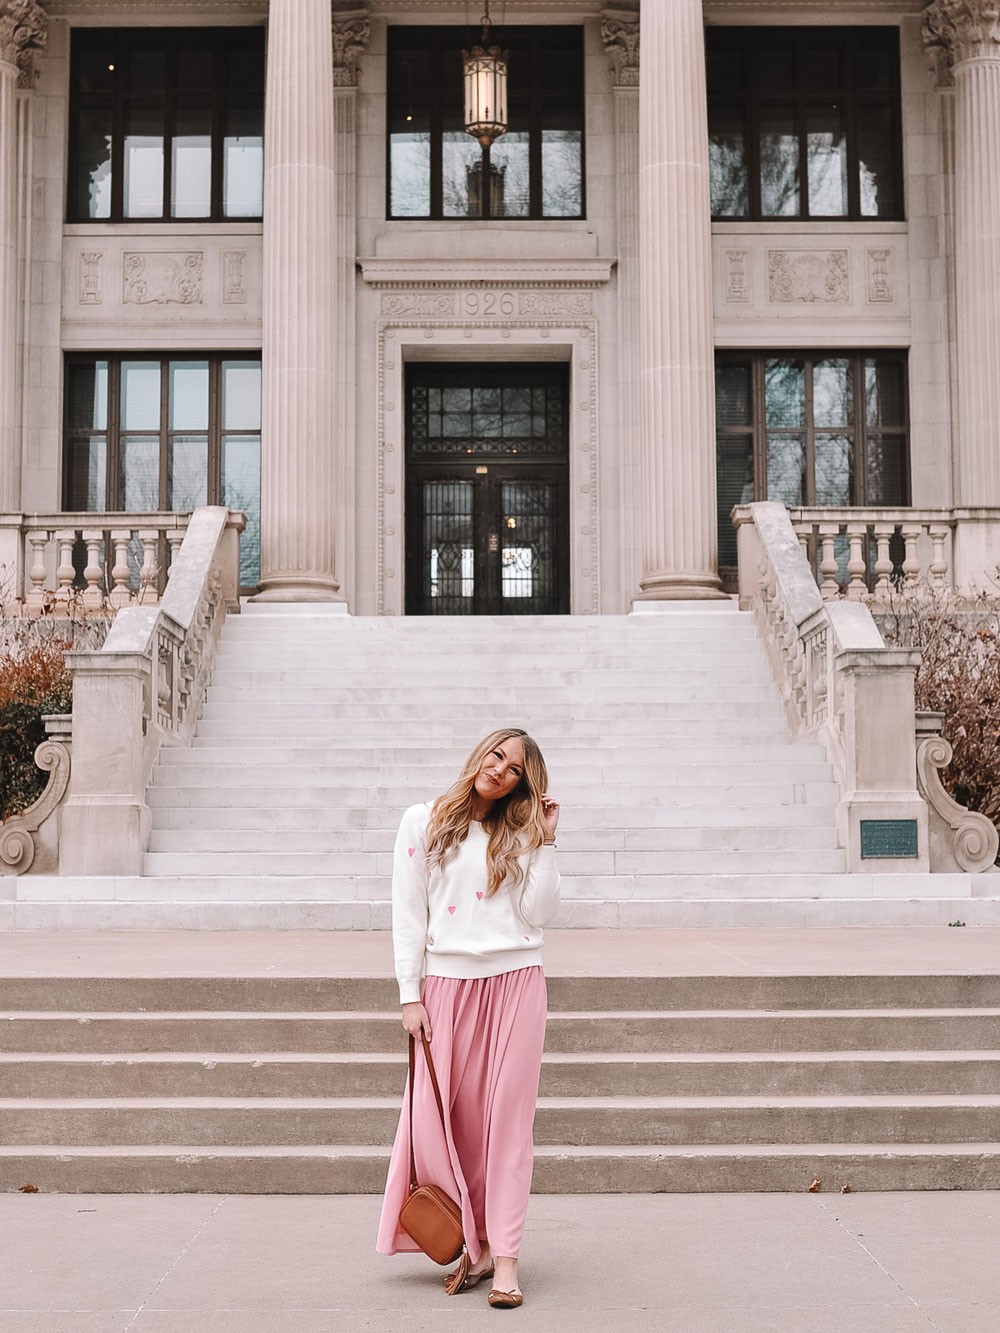 OKC blogger Amanda Martin talks about what to wear for Valentine's Day